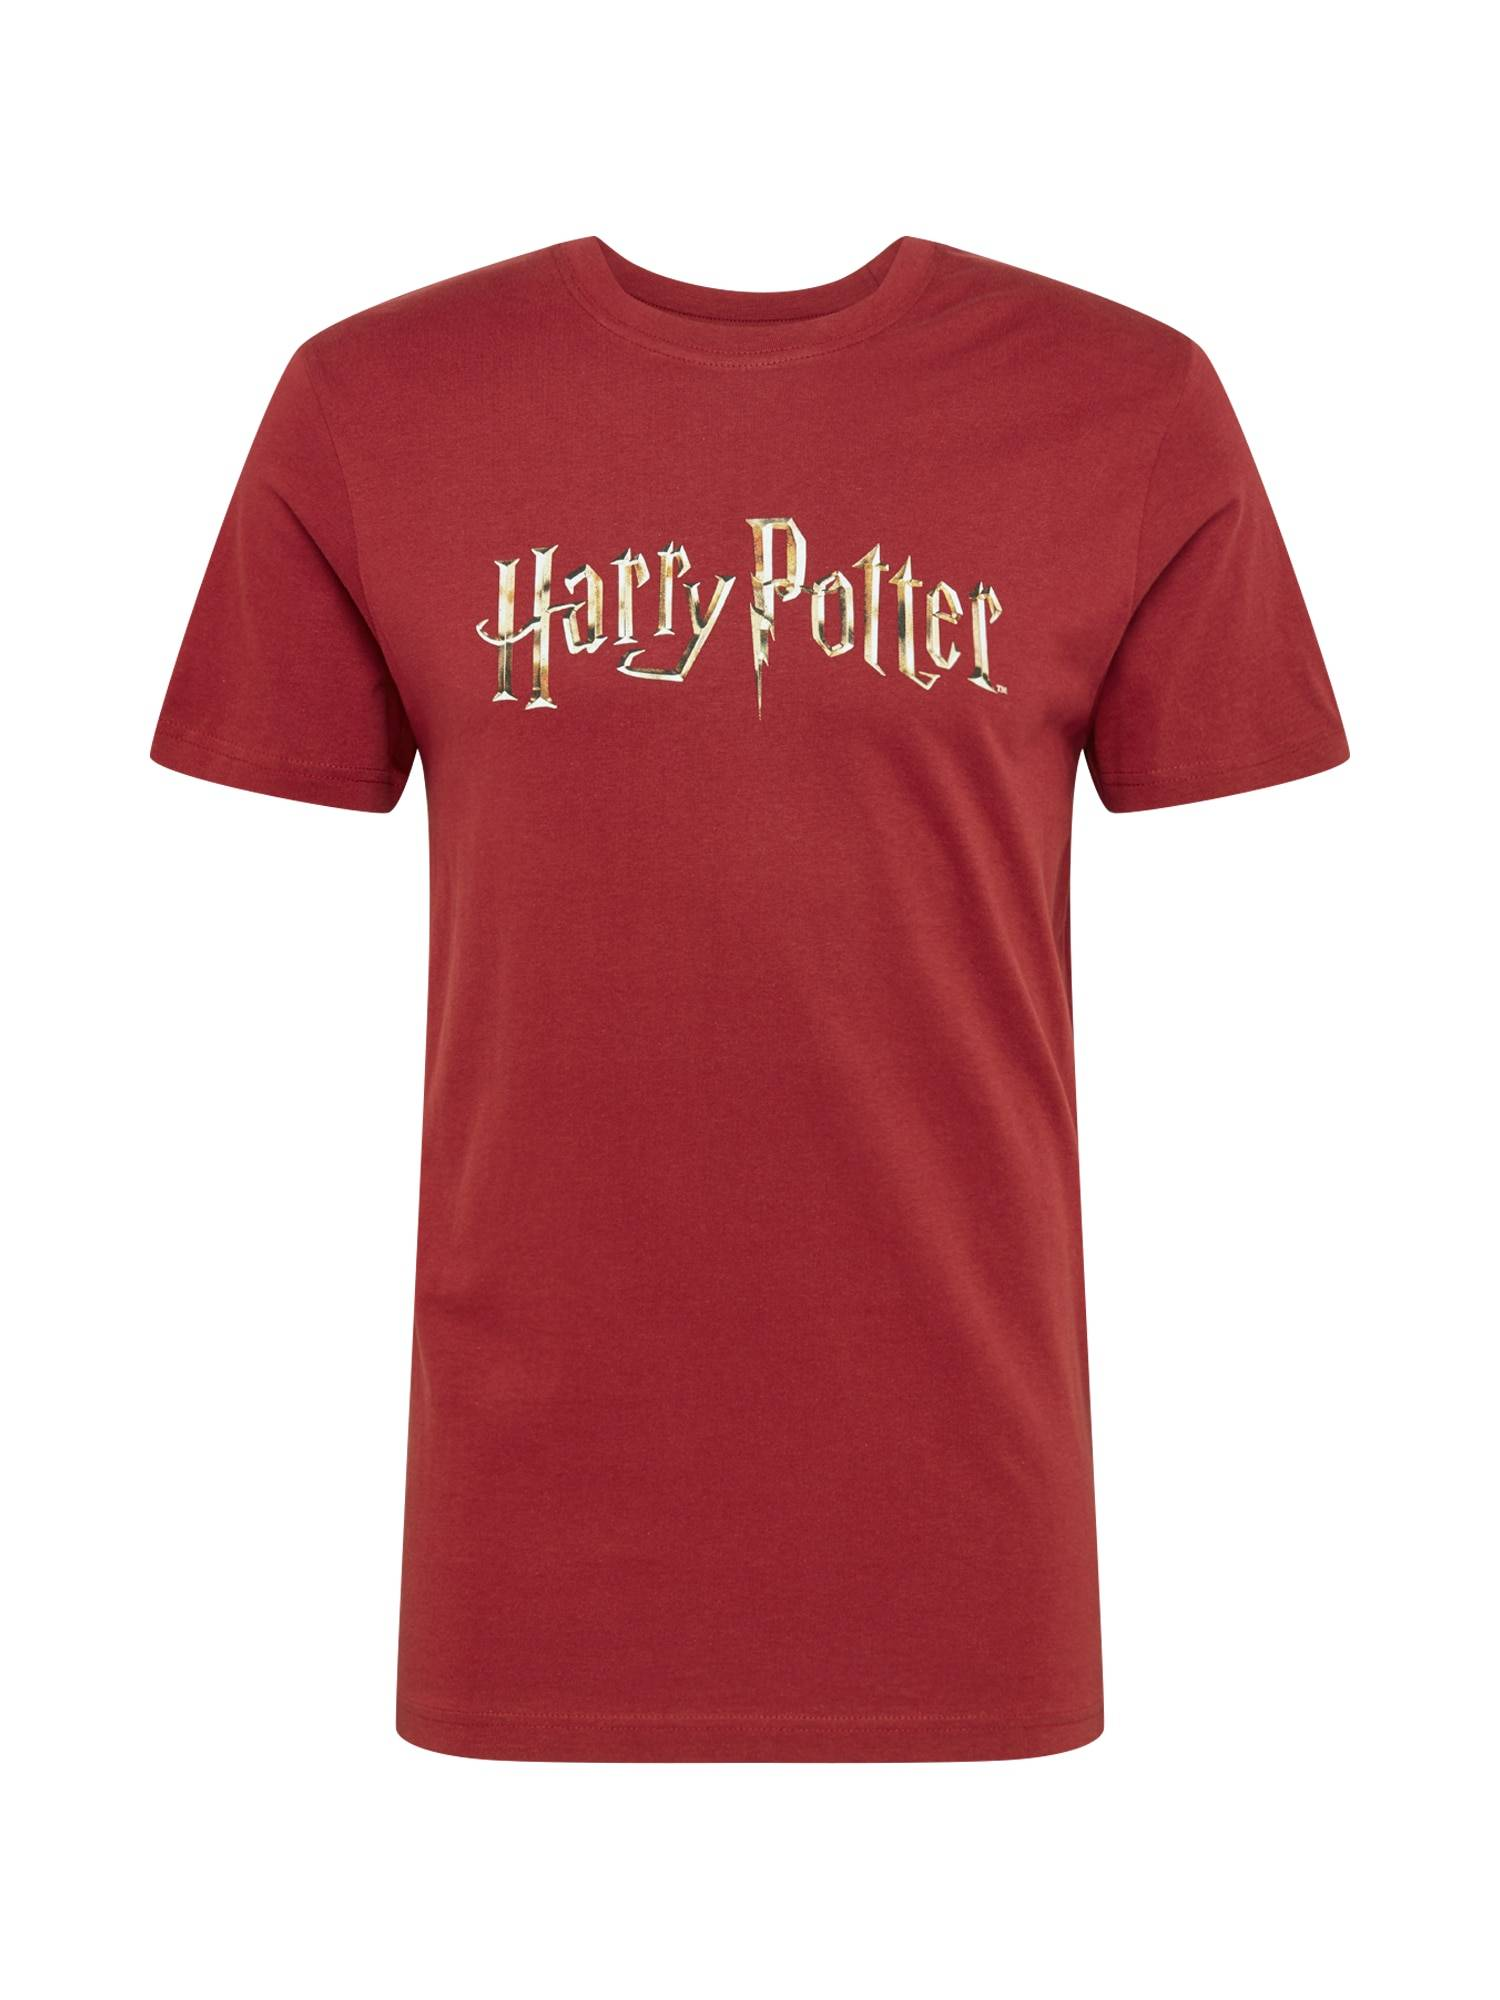 Tee T-Shirt 'Harry Potter'  - Rouge - Taille: L - male